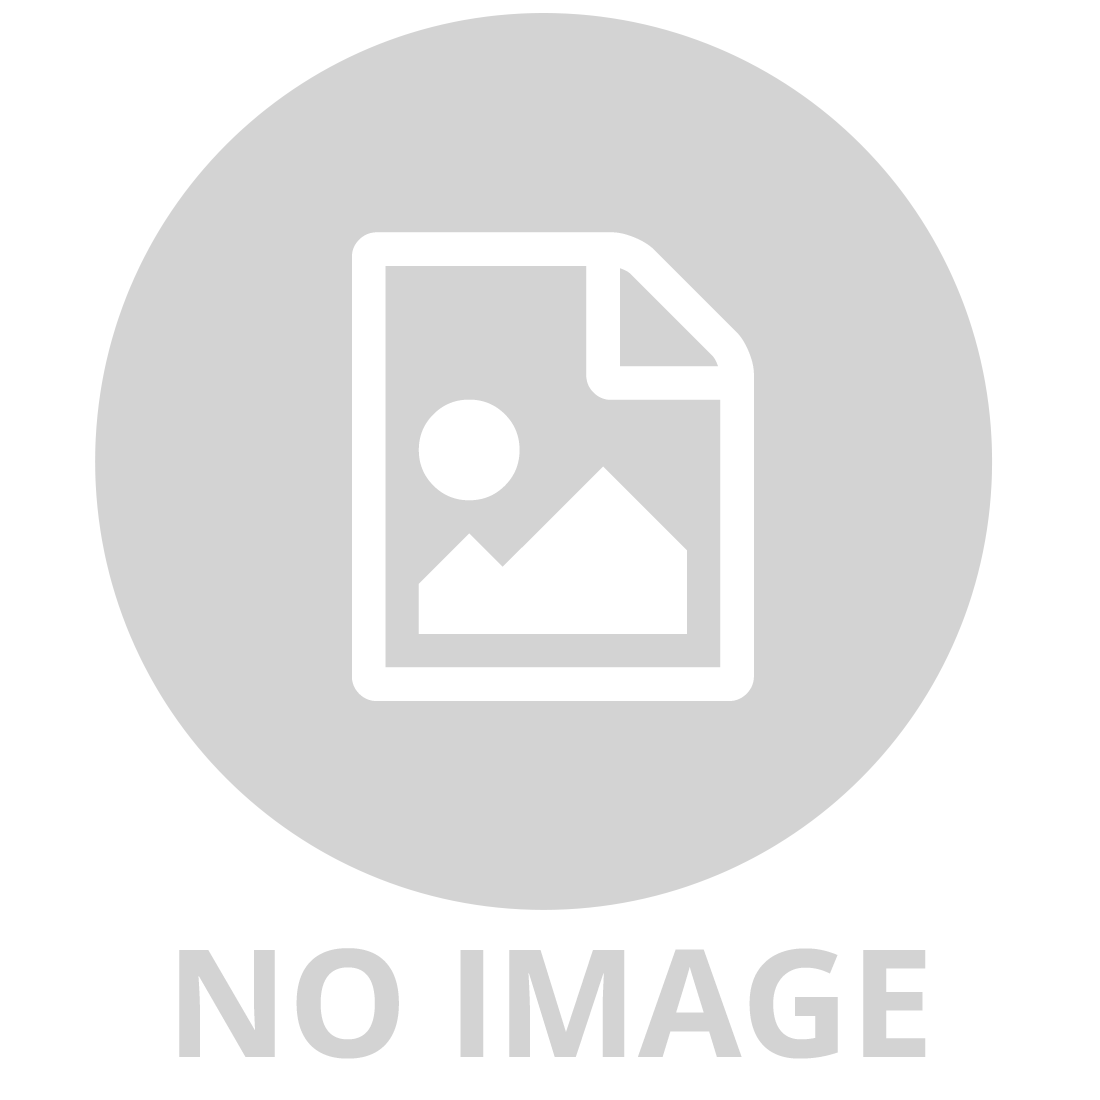 TAMIYA TS 3 DARK YELLOW SPRAY PAINT FOR PLASTICS